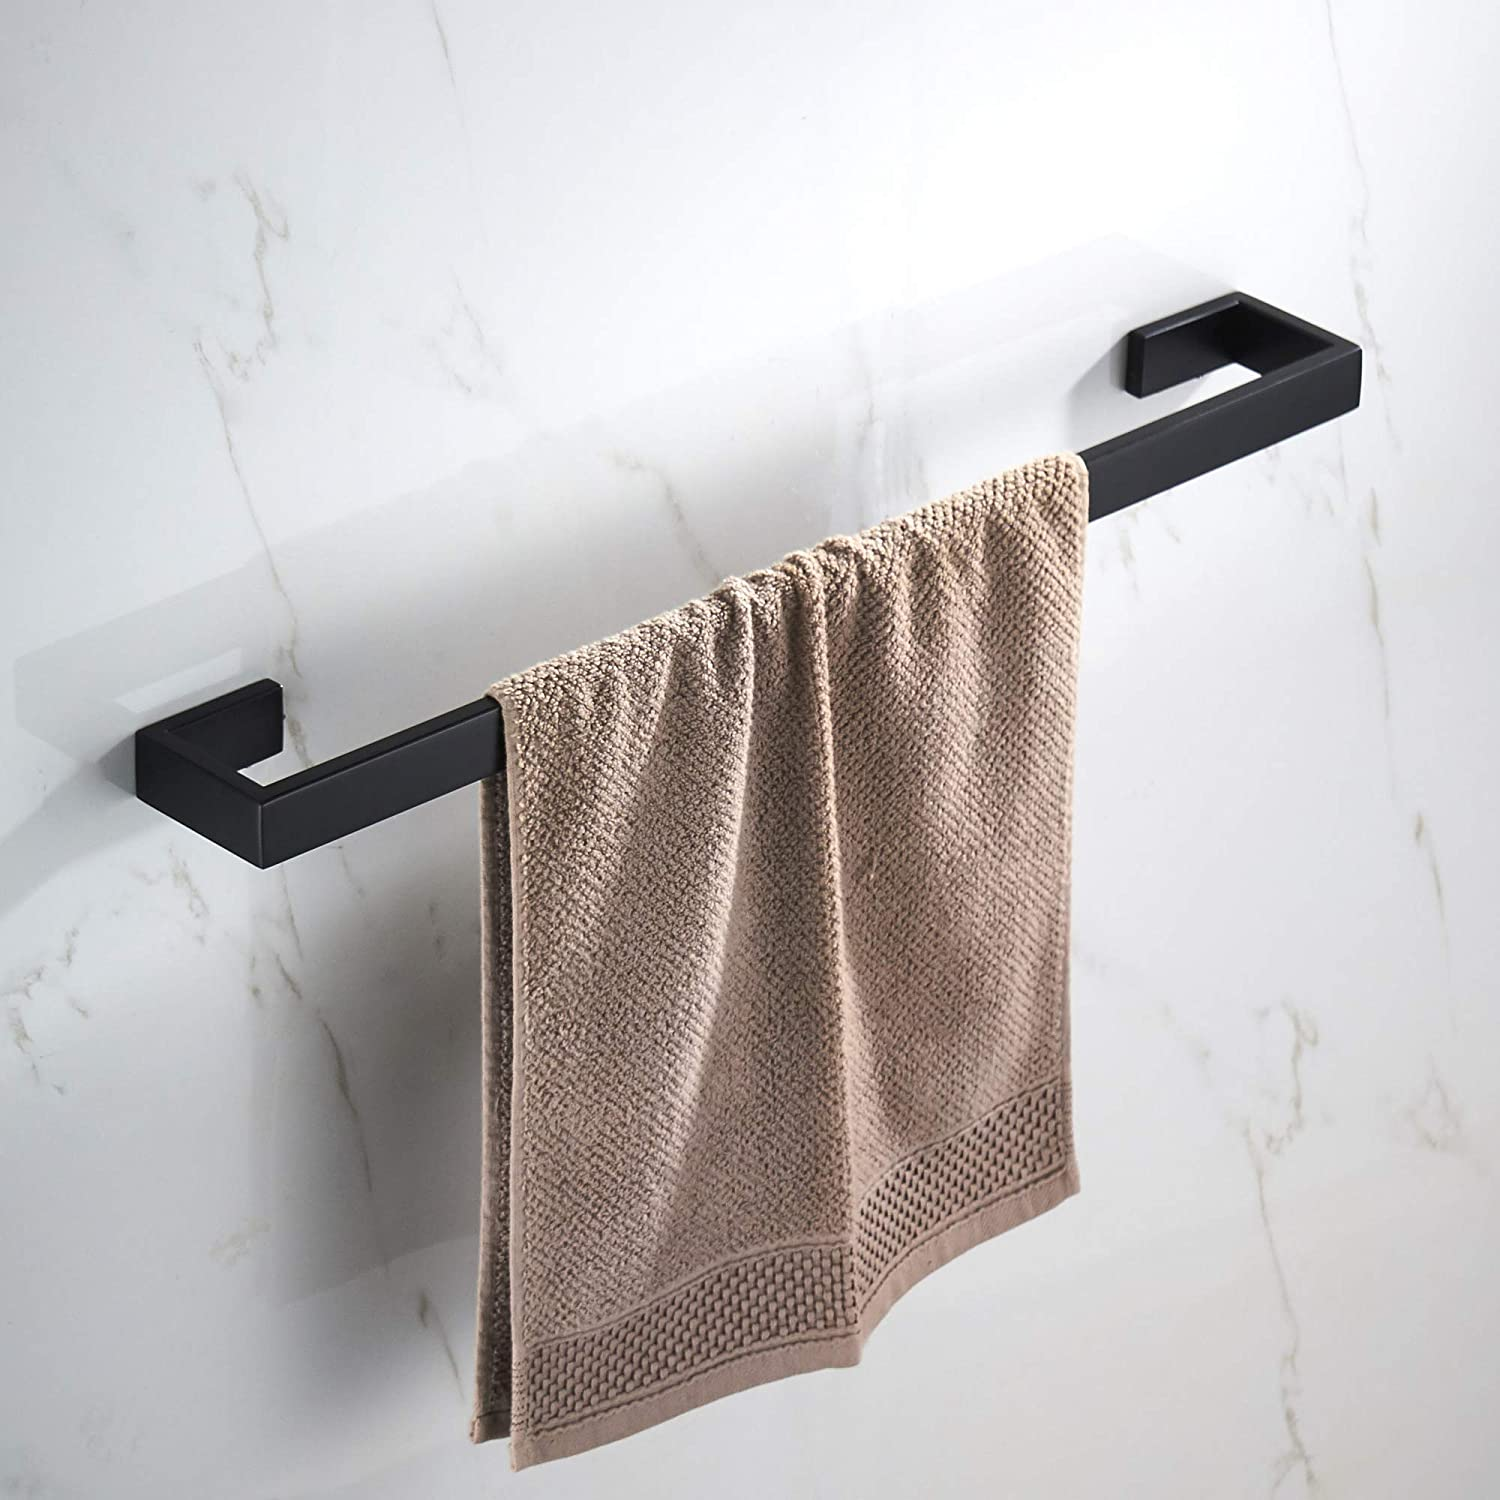 Junsun Towel Bar 24 Inch Stainless Steel Towel Holder Modern Bathroom Accessories Towel Rack Wall Mounted Matte Black Amazon Ca Home Kitchen